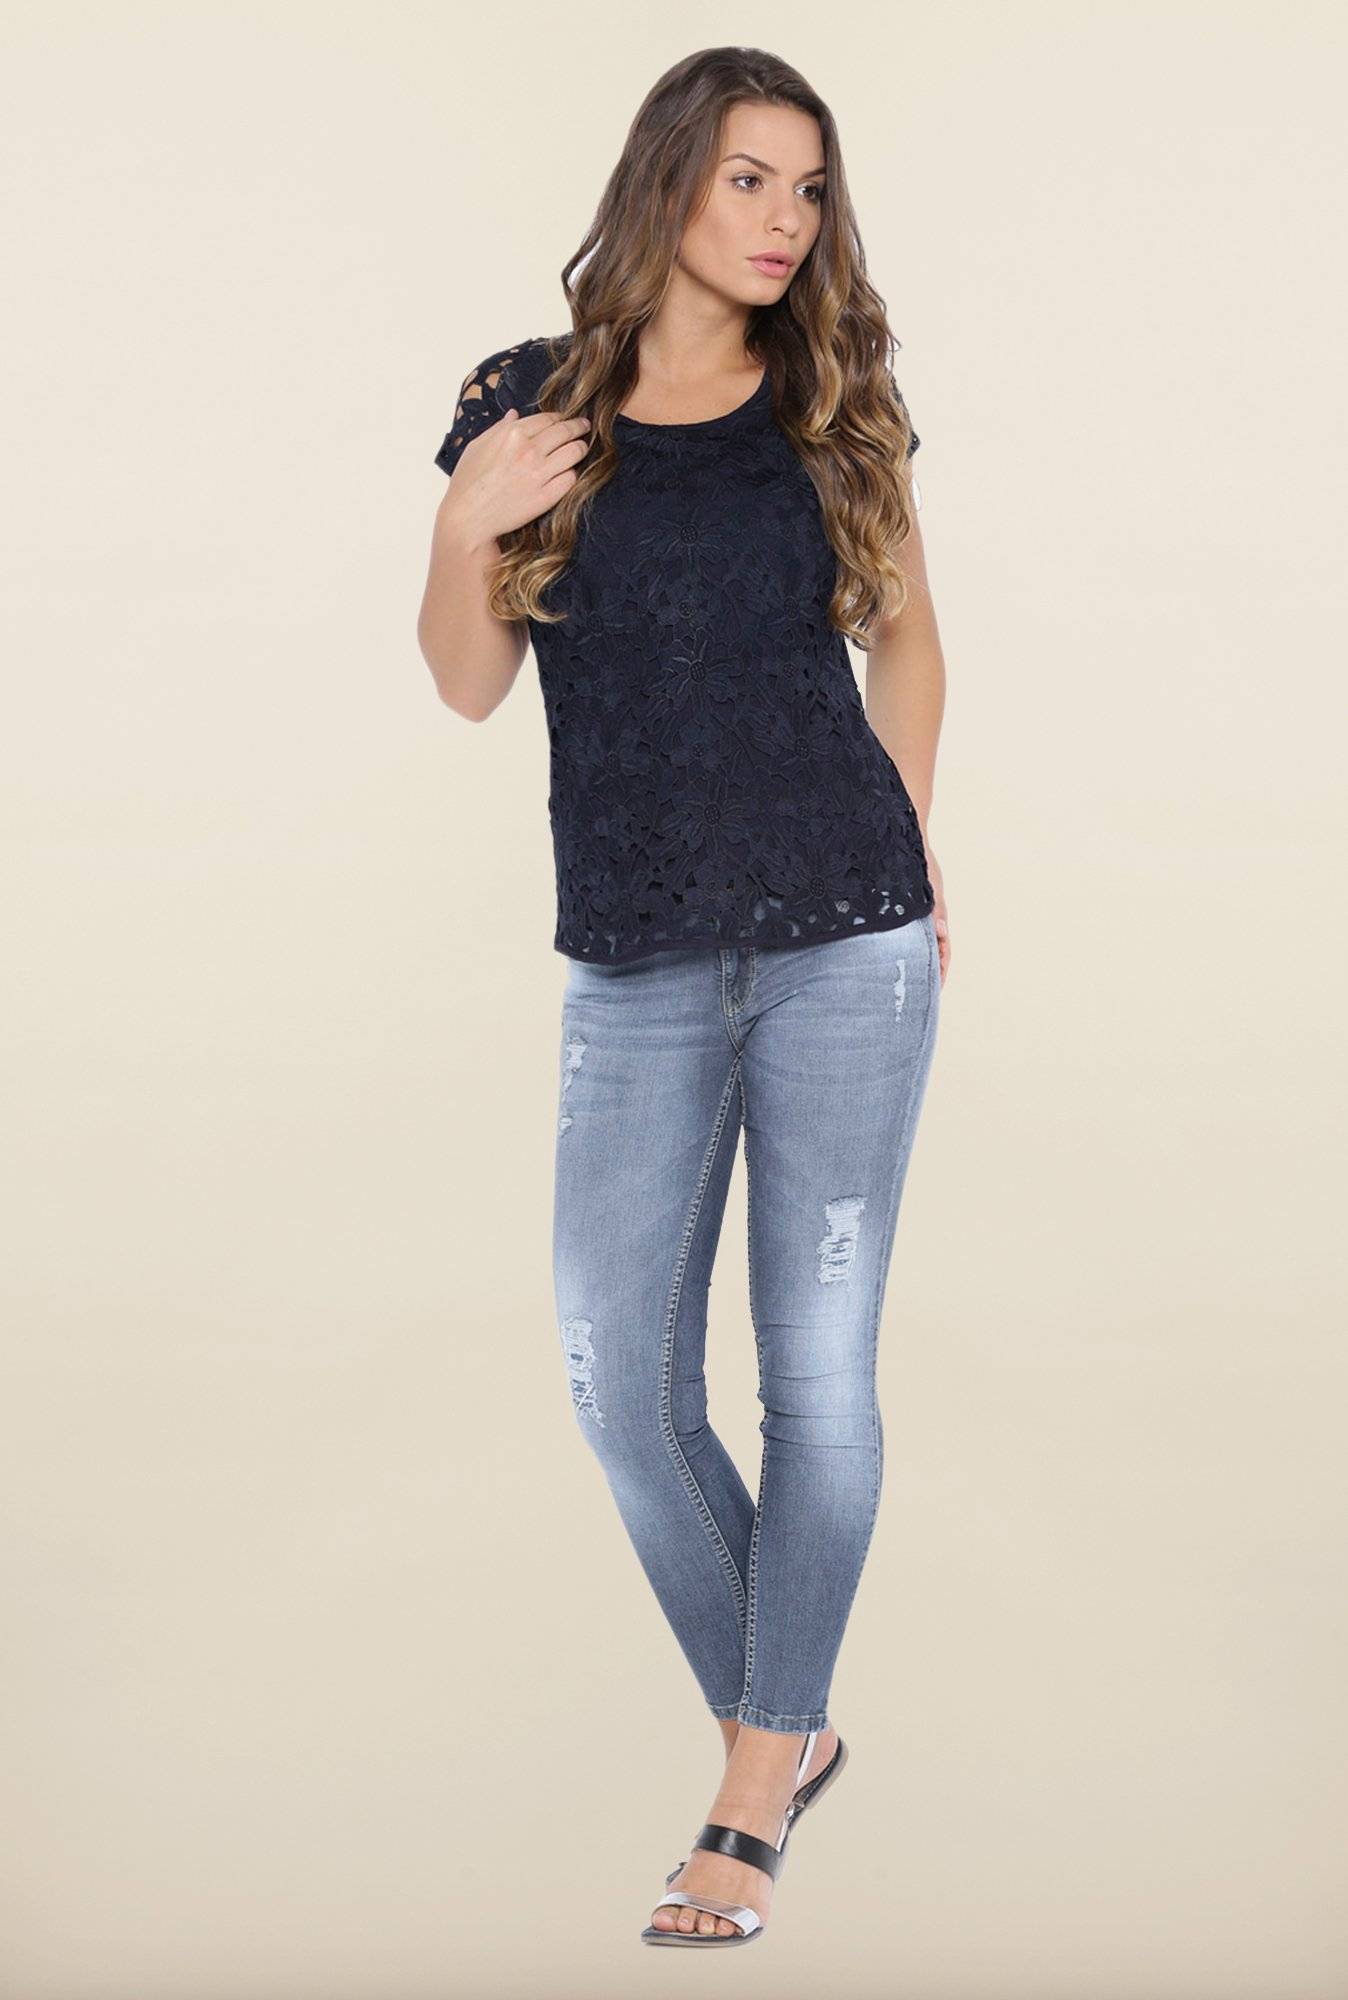 Kraus Navy Lace Top